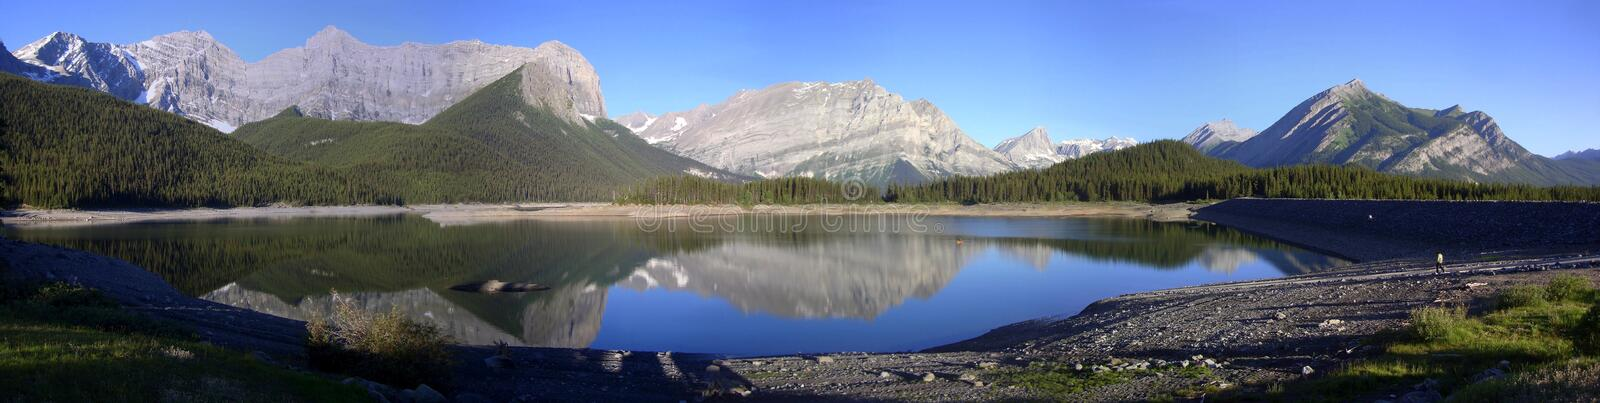 Panorama - lago upper de Kananaskis imagem de stock royalty free